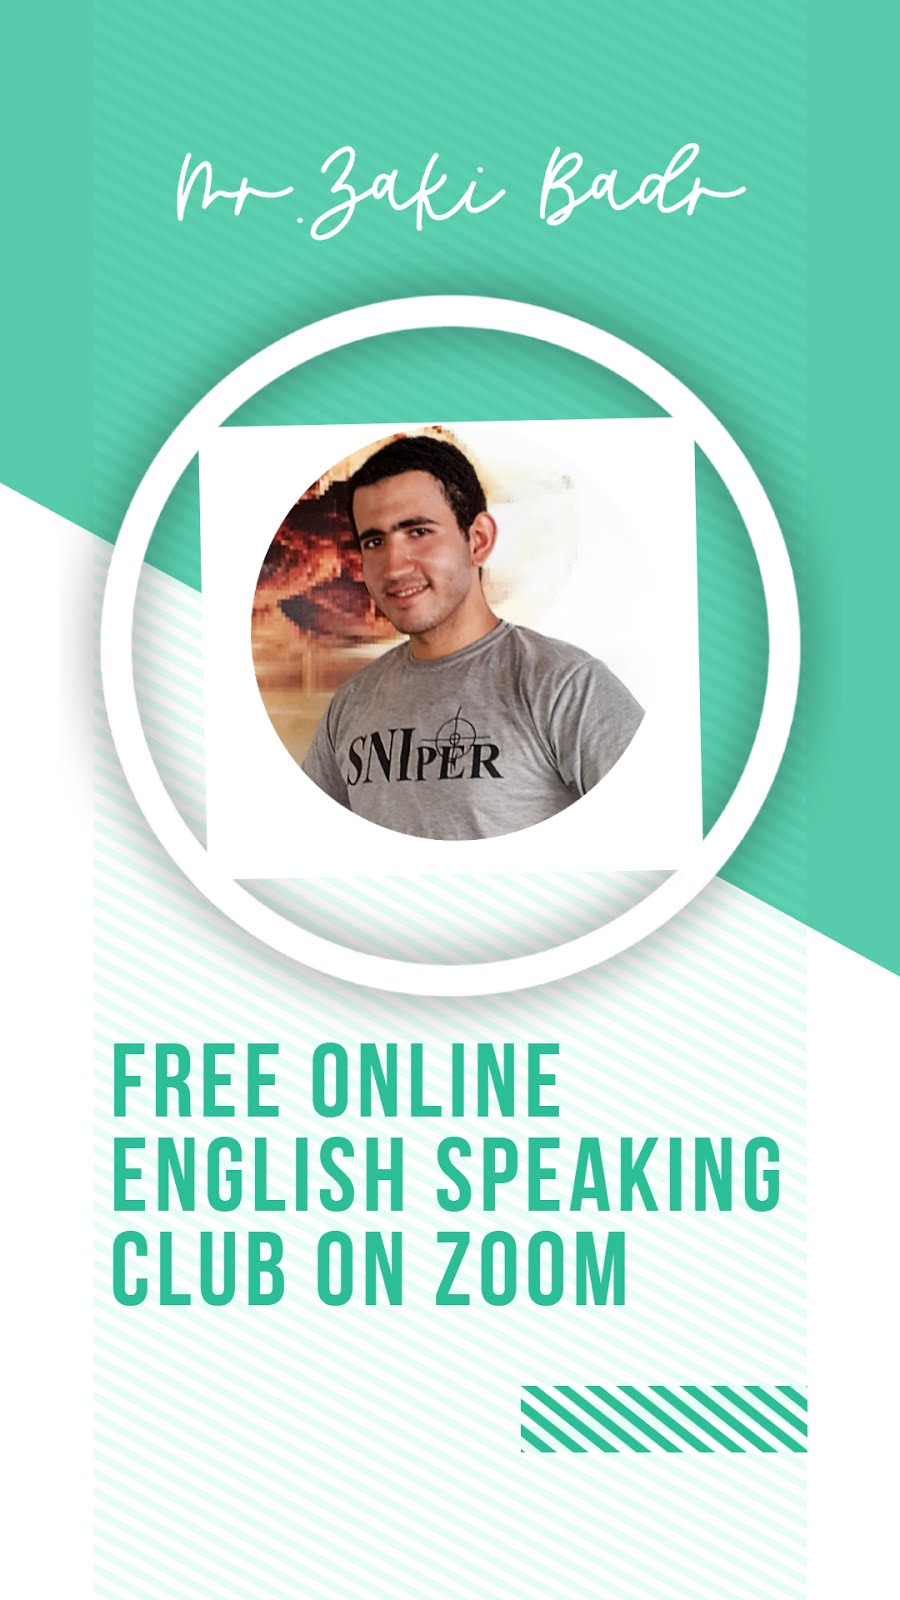 Free Online English Speaking Club on Zoom